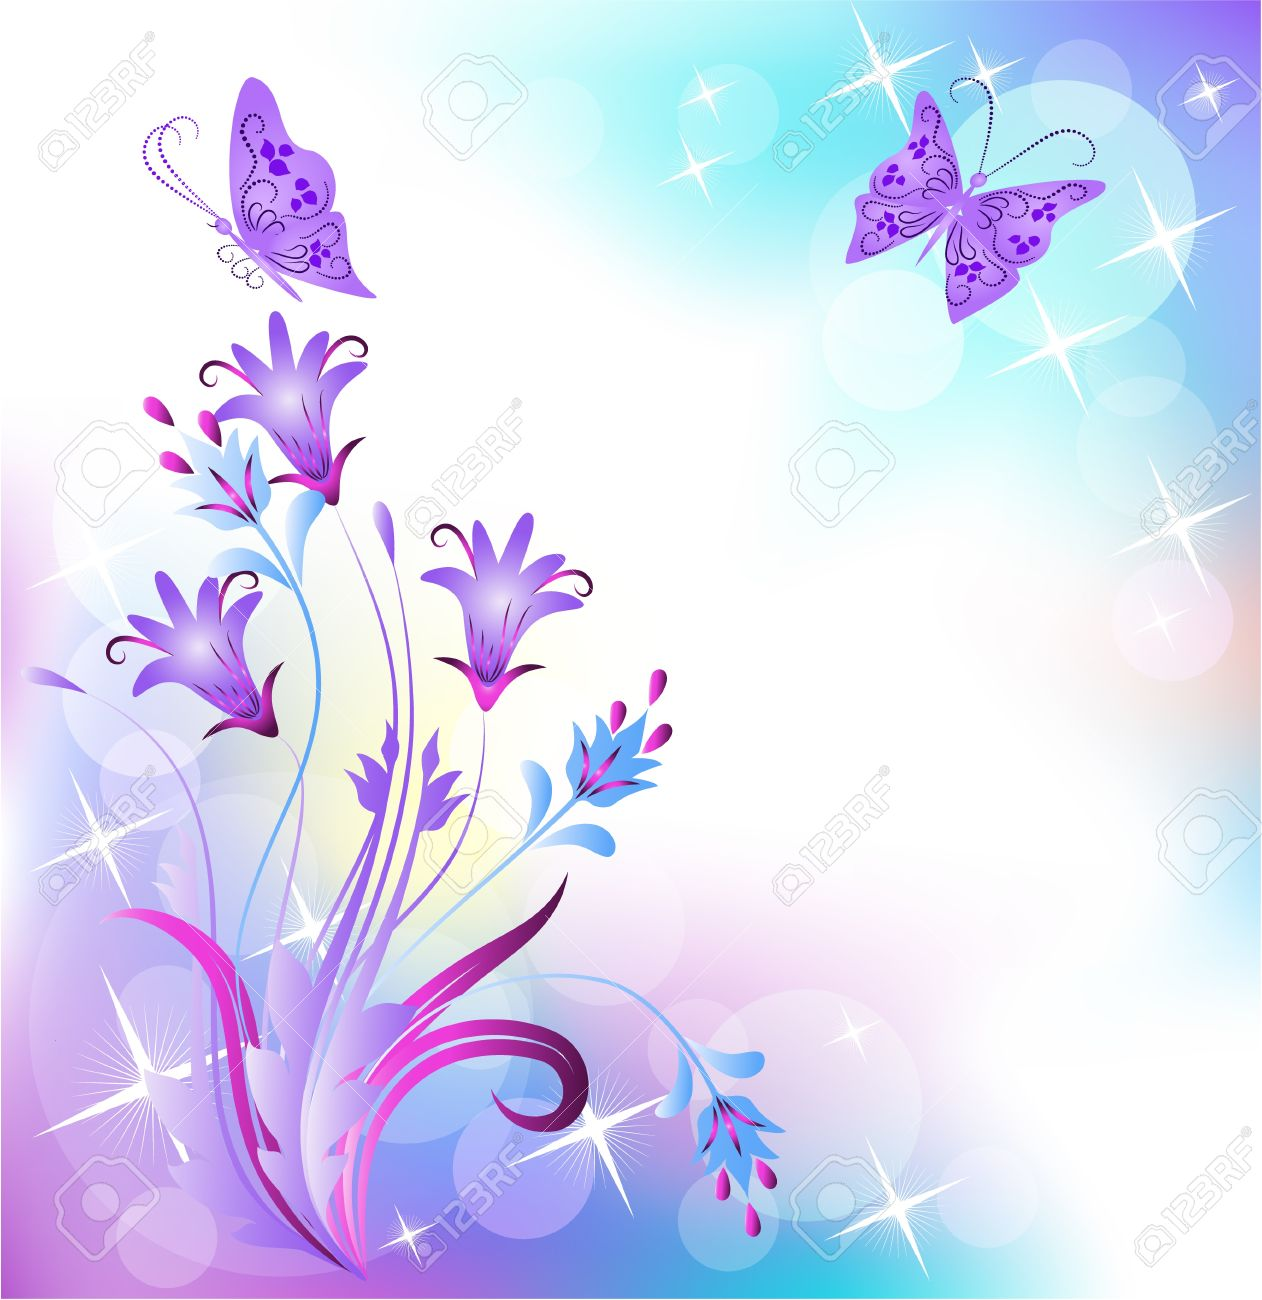 Floral background with butterfly - 13623232